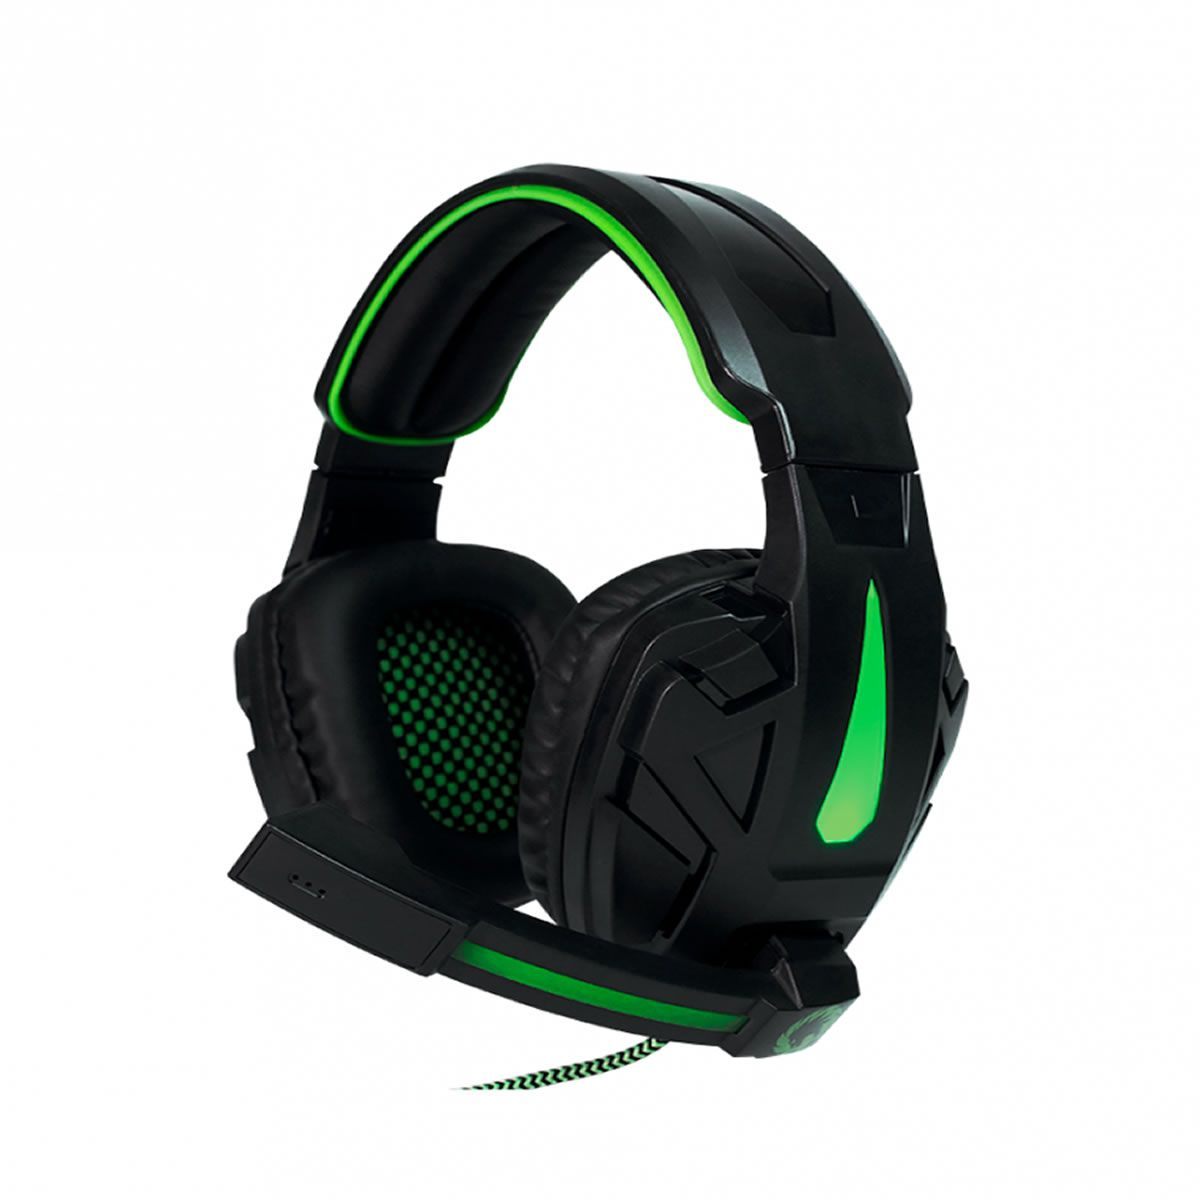 Headset Gamer Preto com LED Verde Gamemax H8657